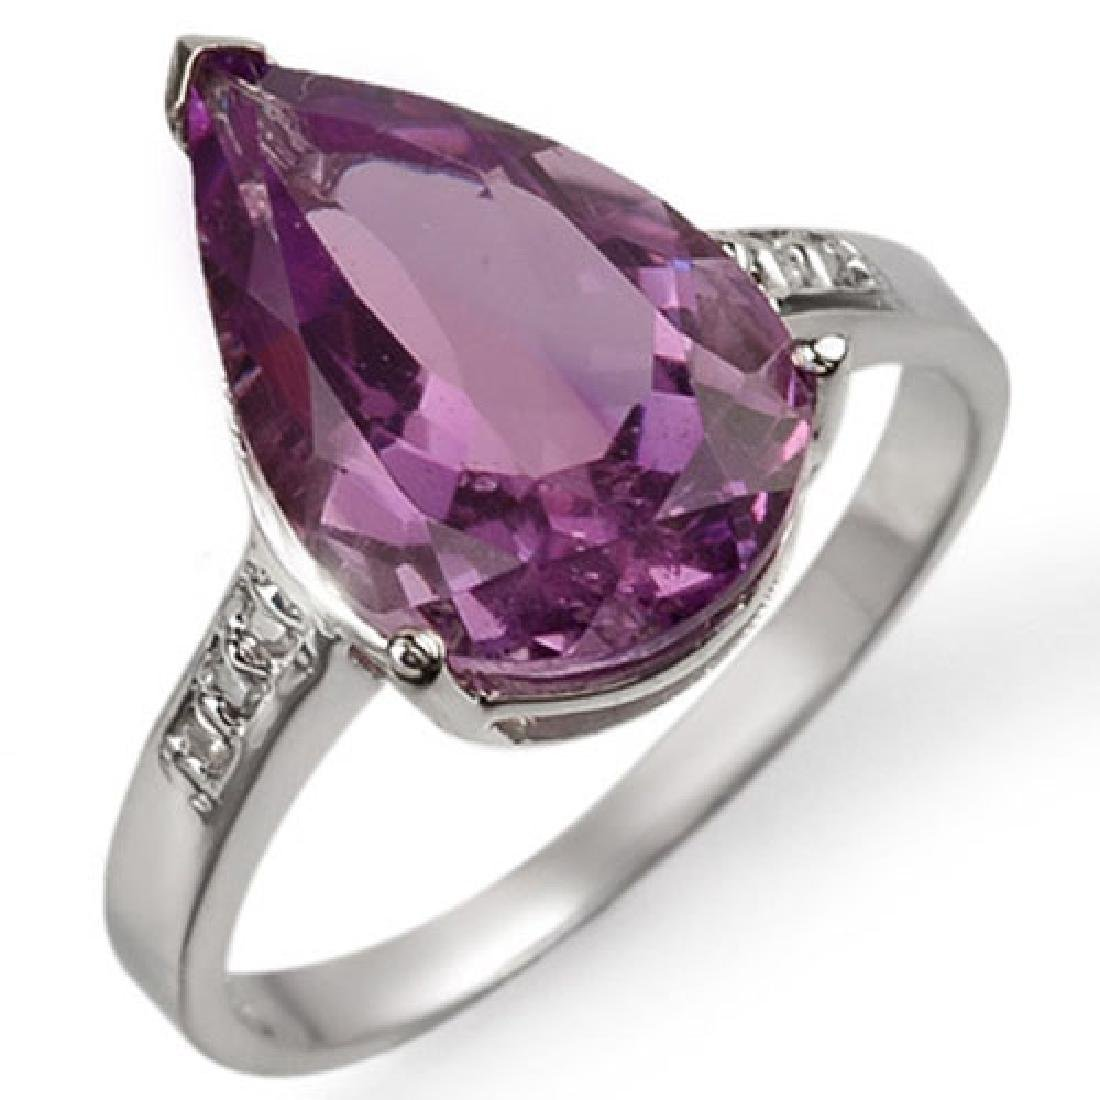 4.10 CTW Amethyst & Diamond Ring 10K White Gold